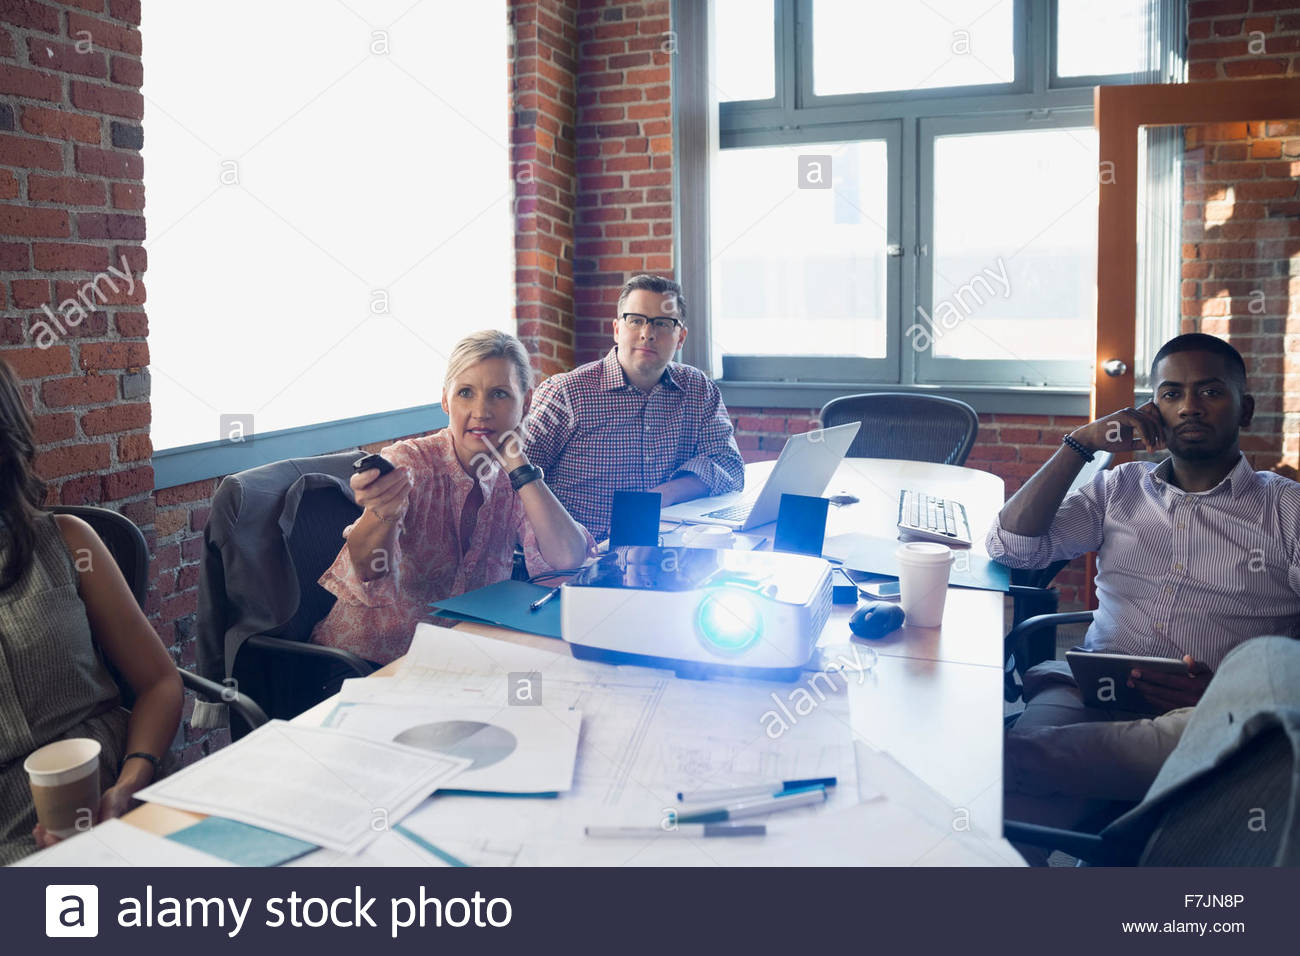 Business people using projector in conference room meeting - Stock Image